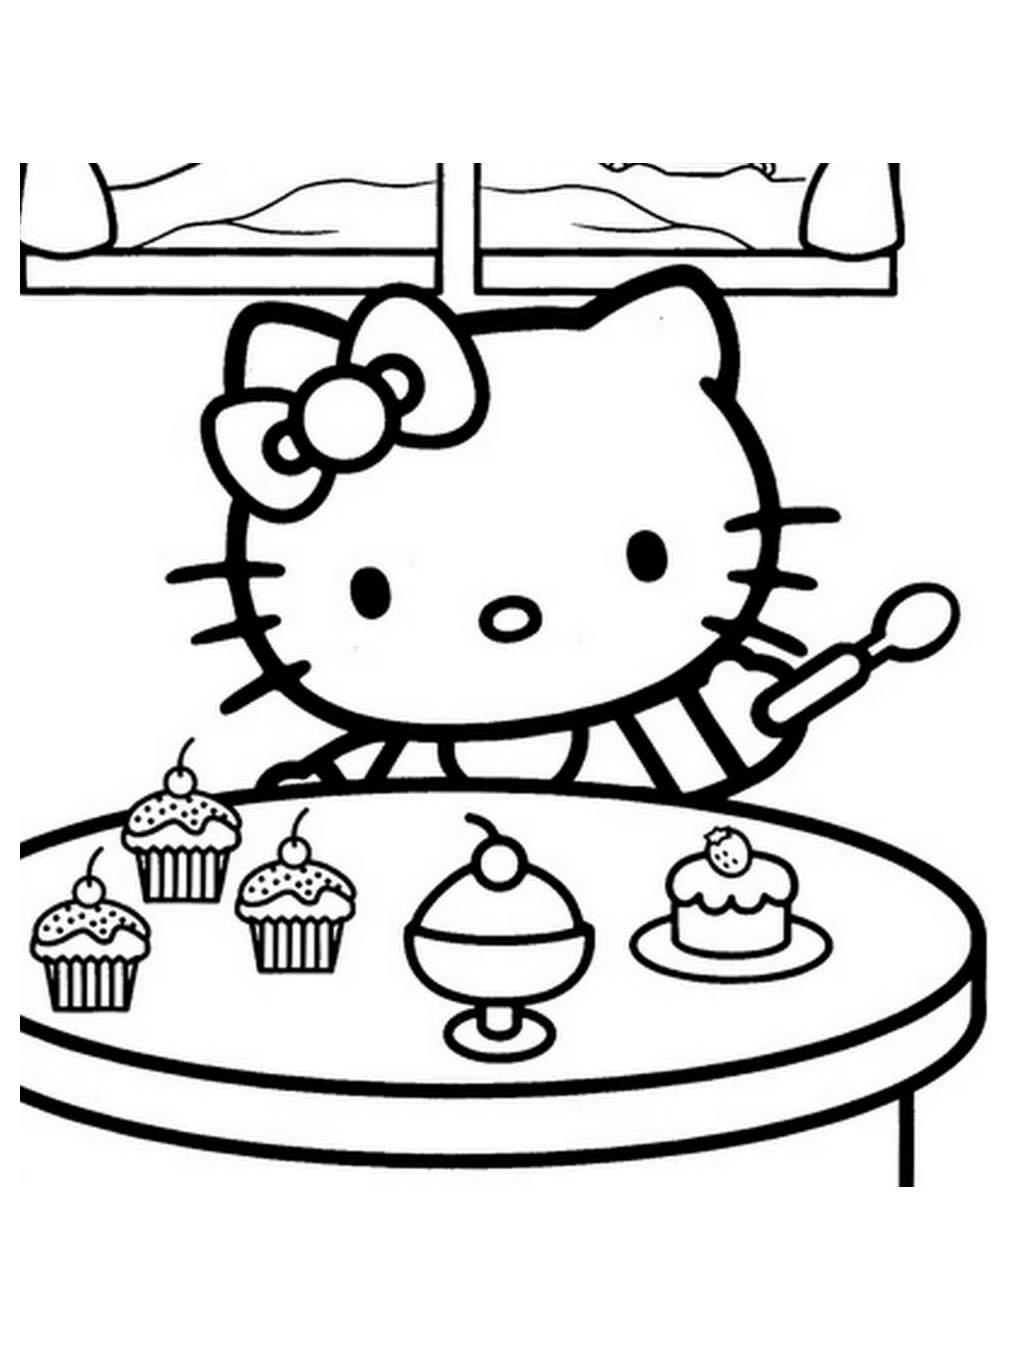 hello kitty printable coloring pages for kids to color at getdrawings free kitty hello printable